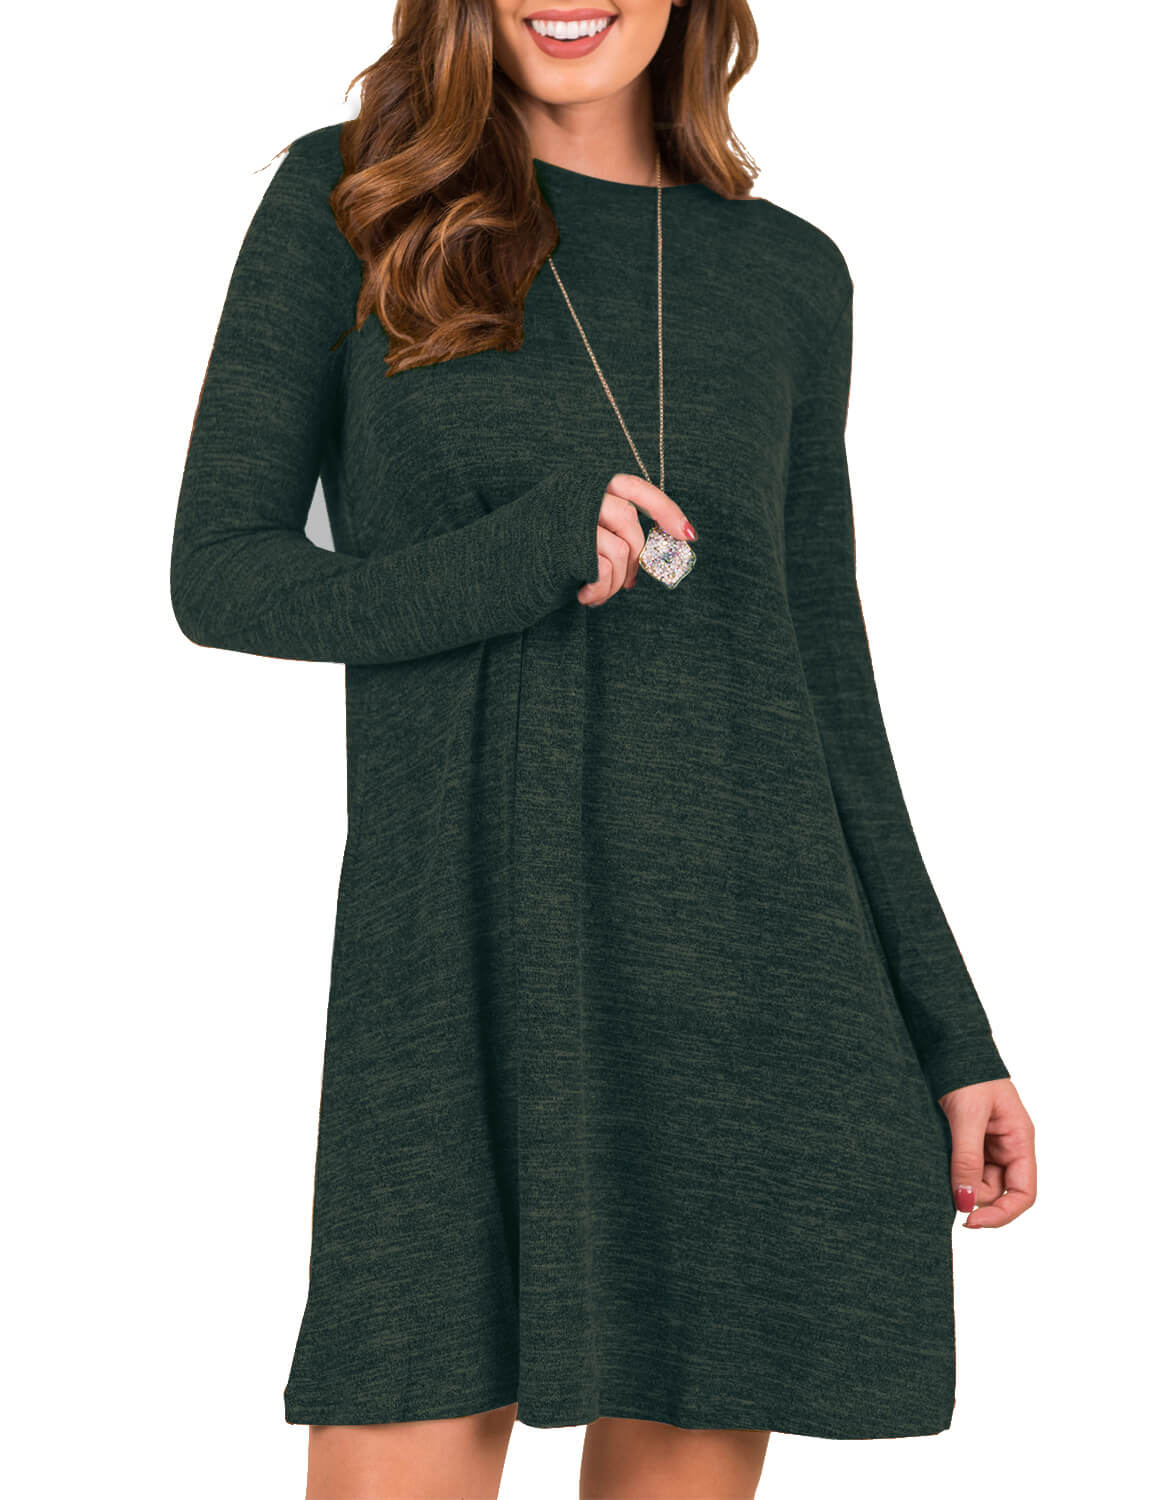 Blooming Jelly_Trendy Long Sleeves Loose Sweater Dress_Dark Olive Green_142399_53_Autumn&Winter Fashion Casual_Dress_Mini Dress